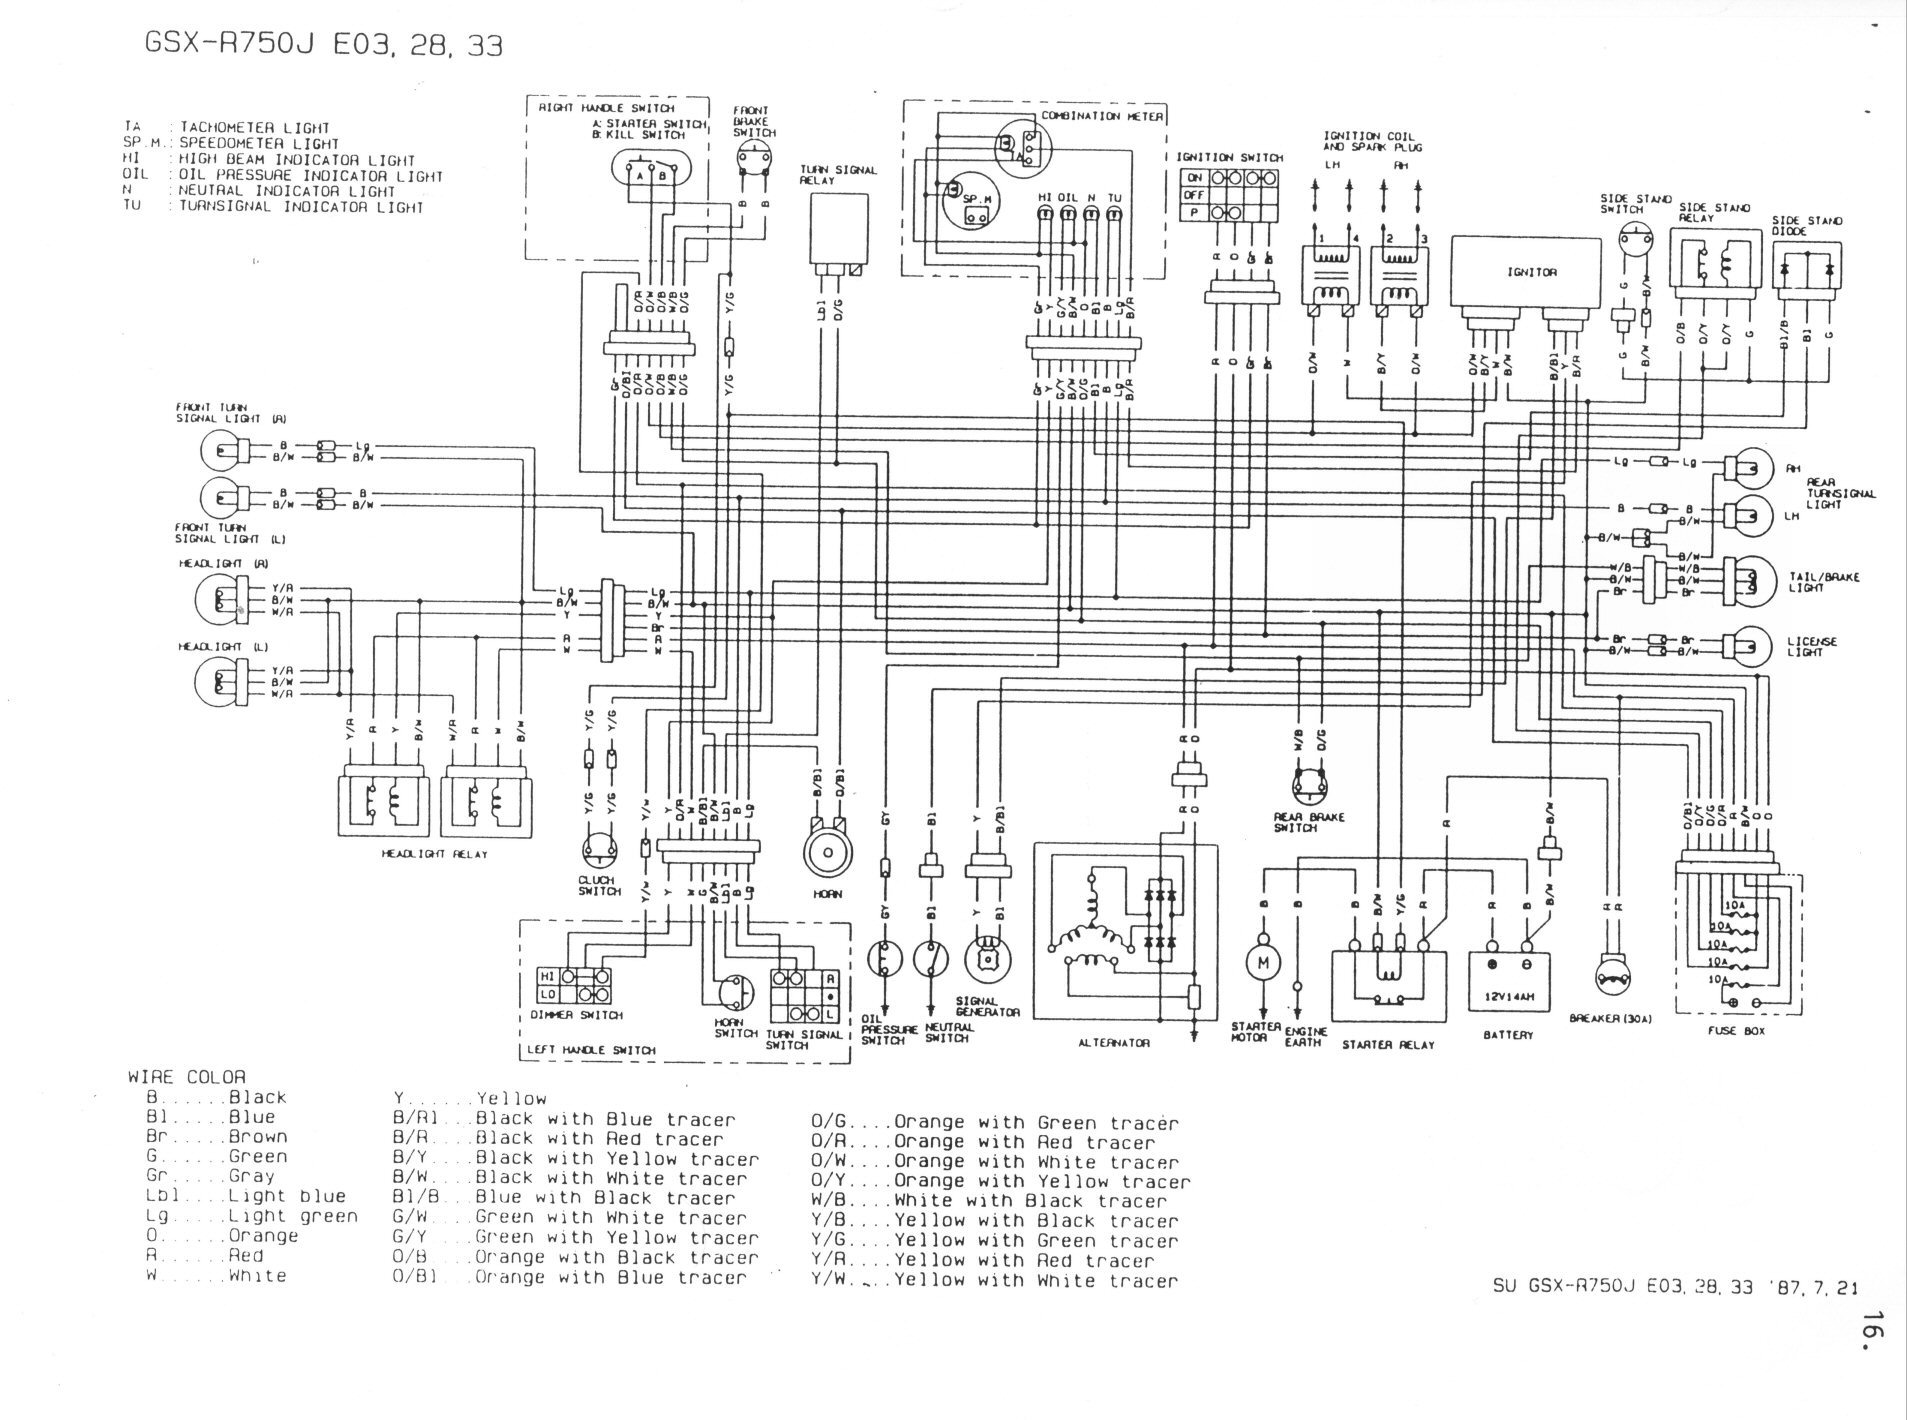 2004 Suzuki Gsxr 1000 Diagram, 2004, Free Engine Image For